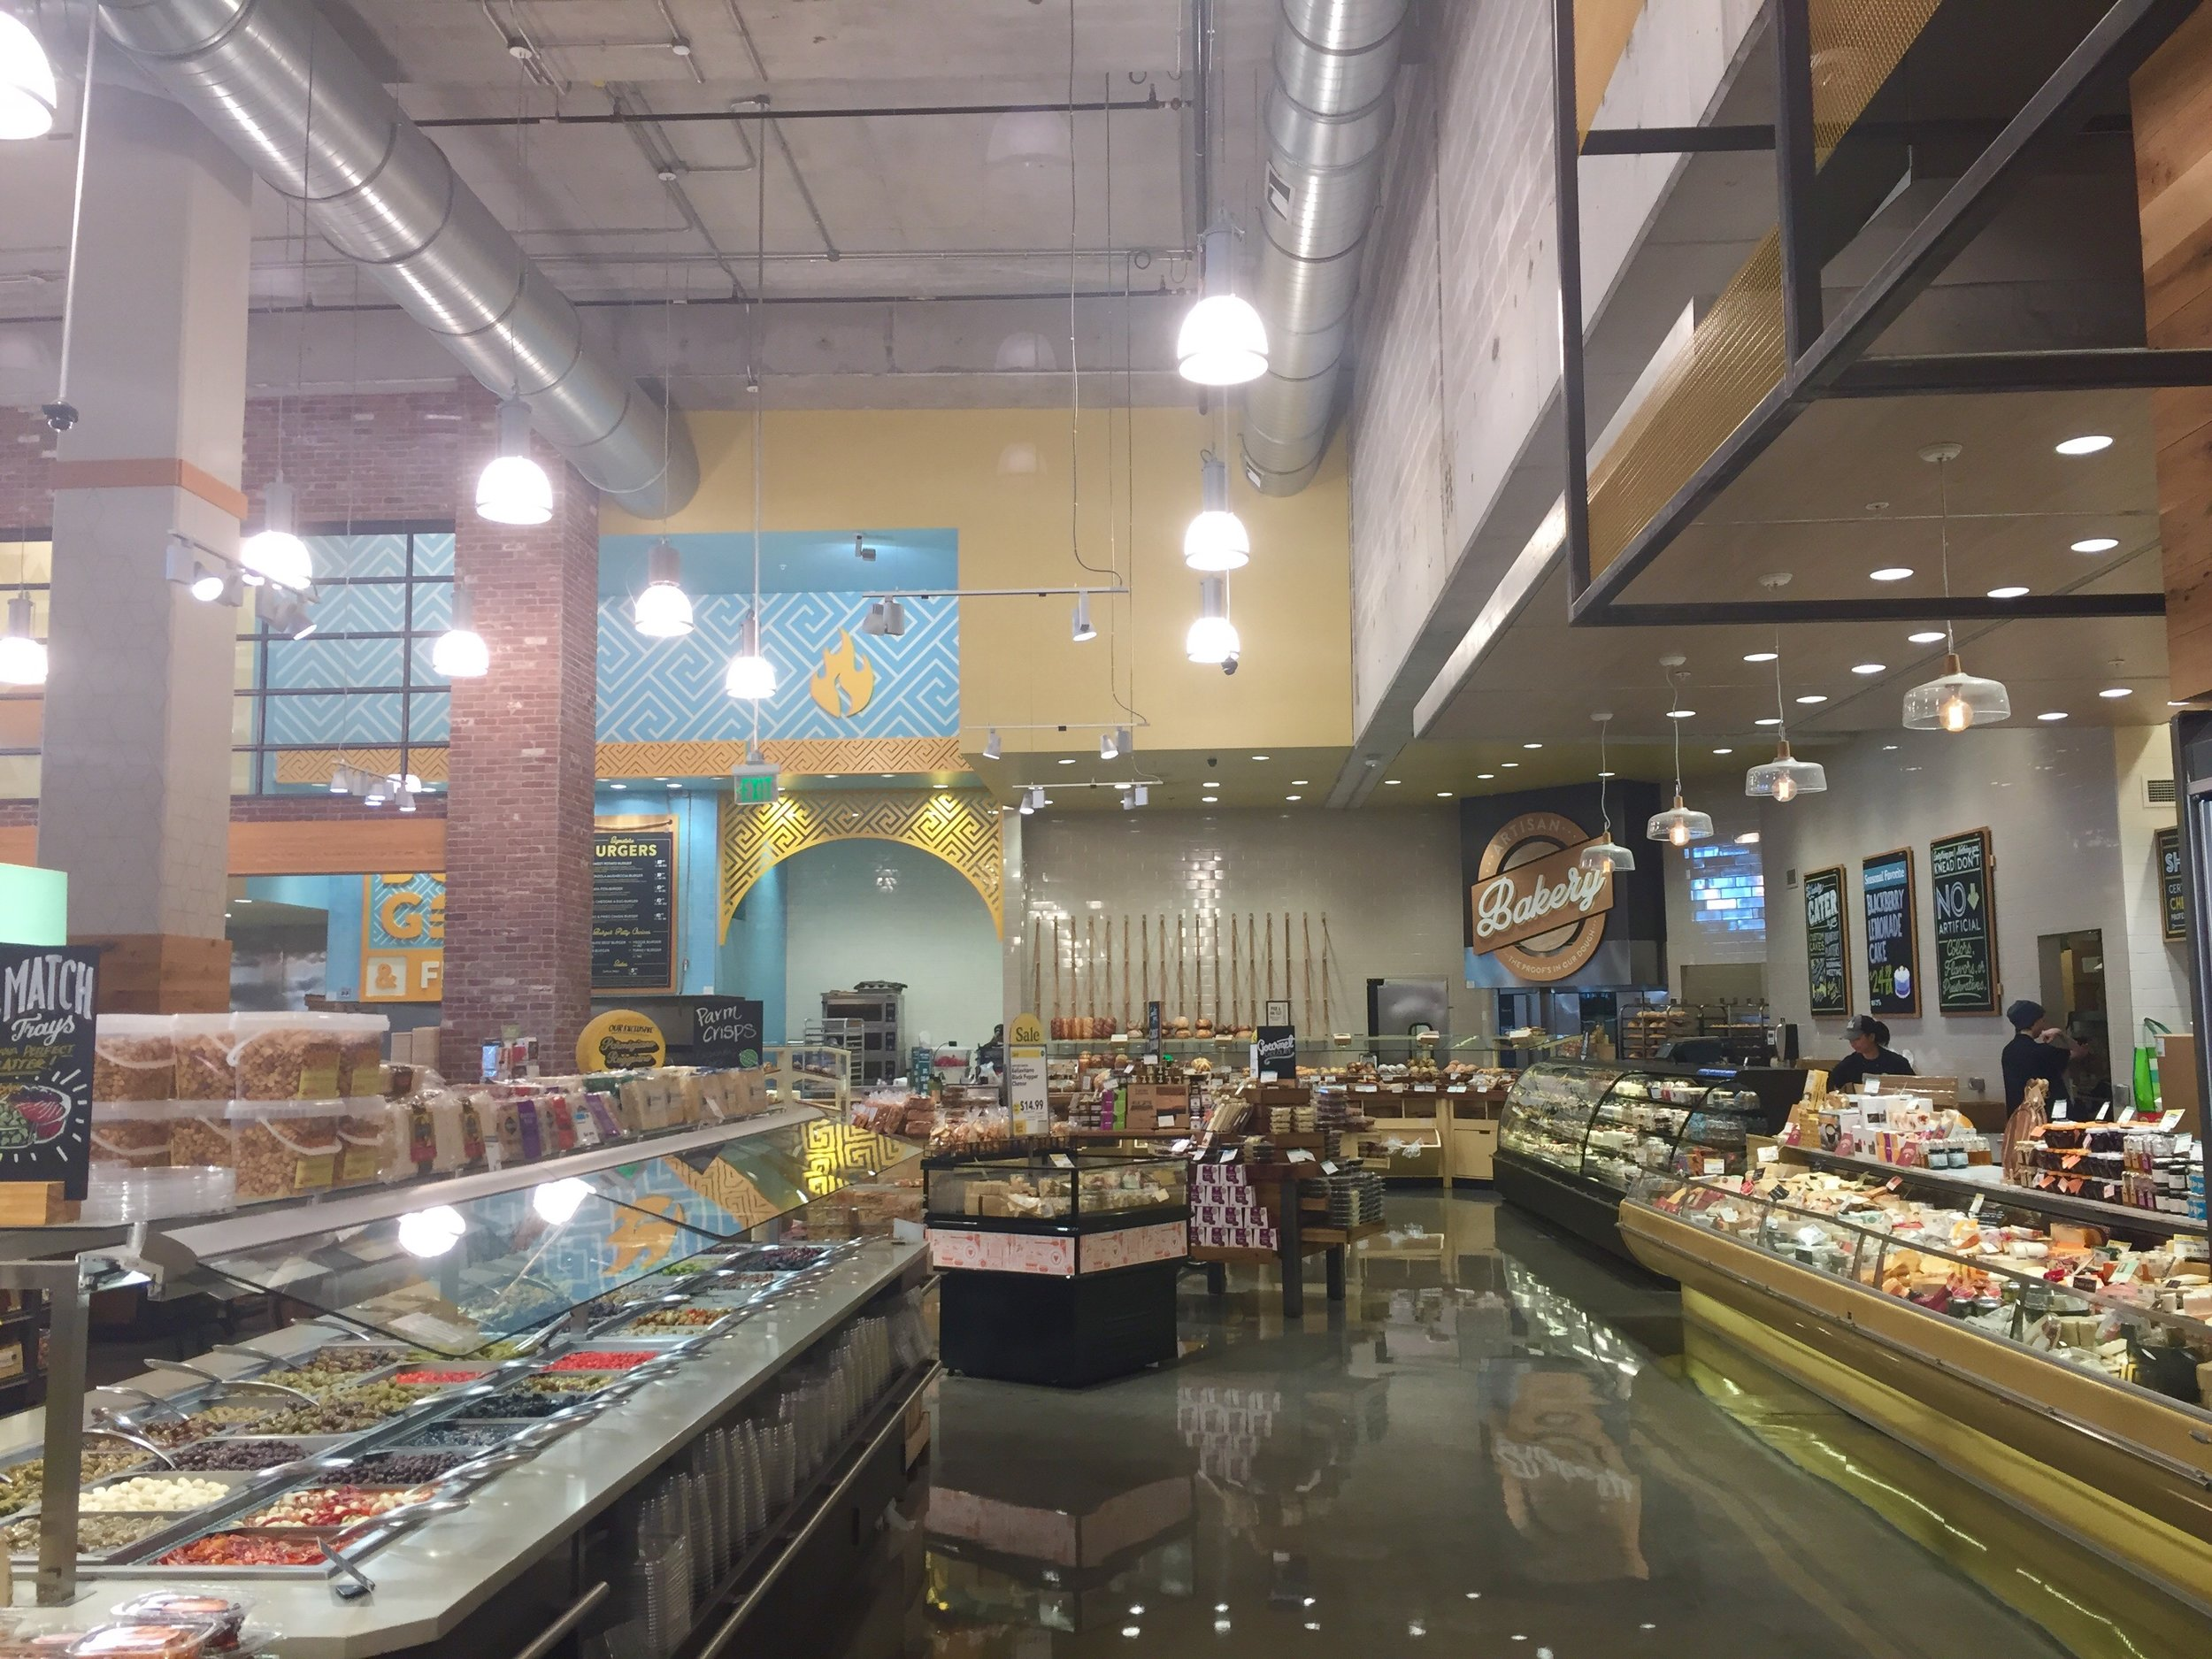 big bakery and cheese sections